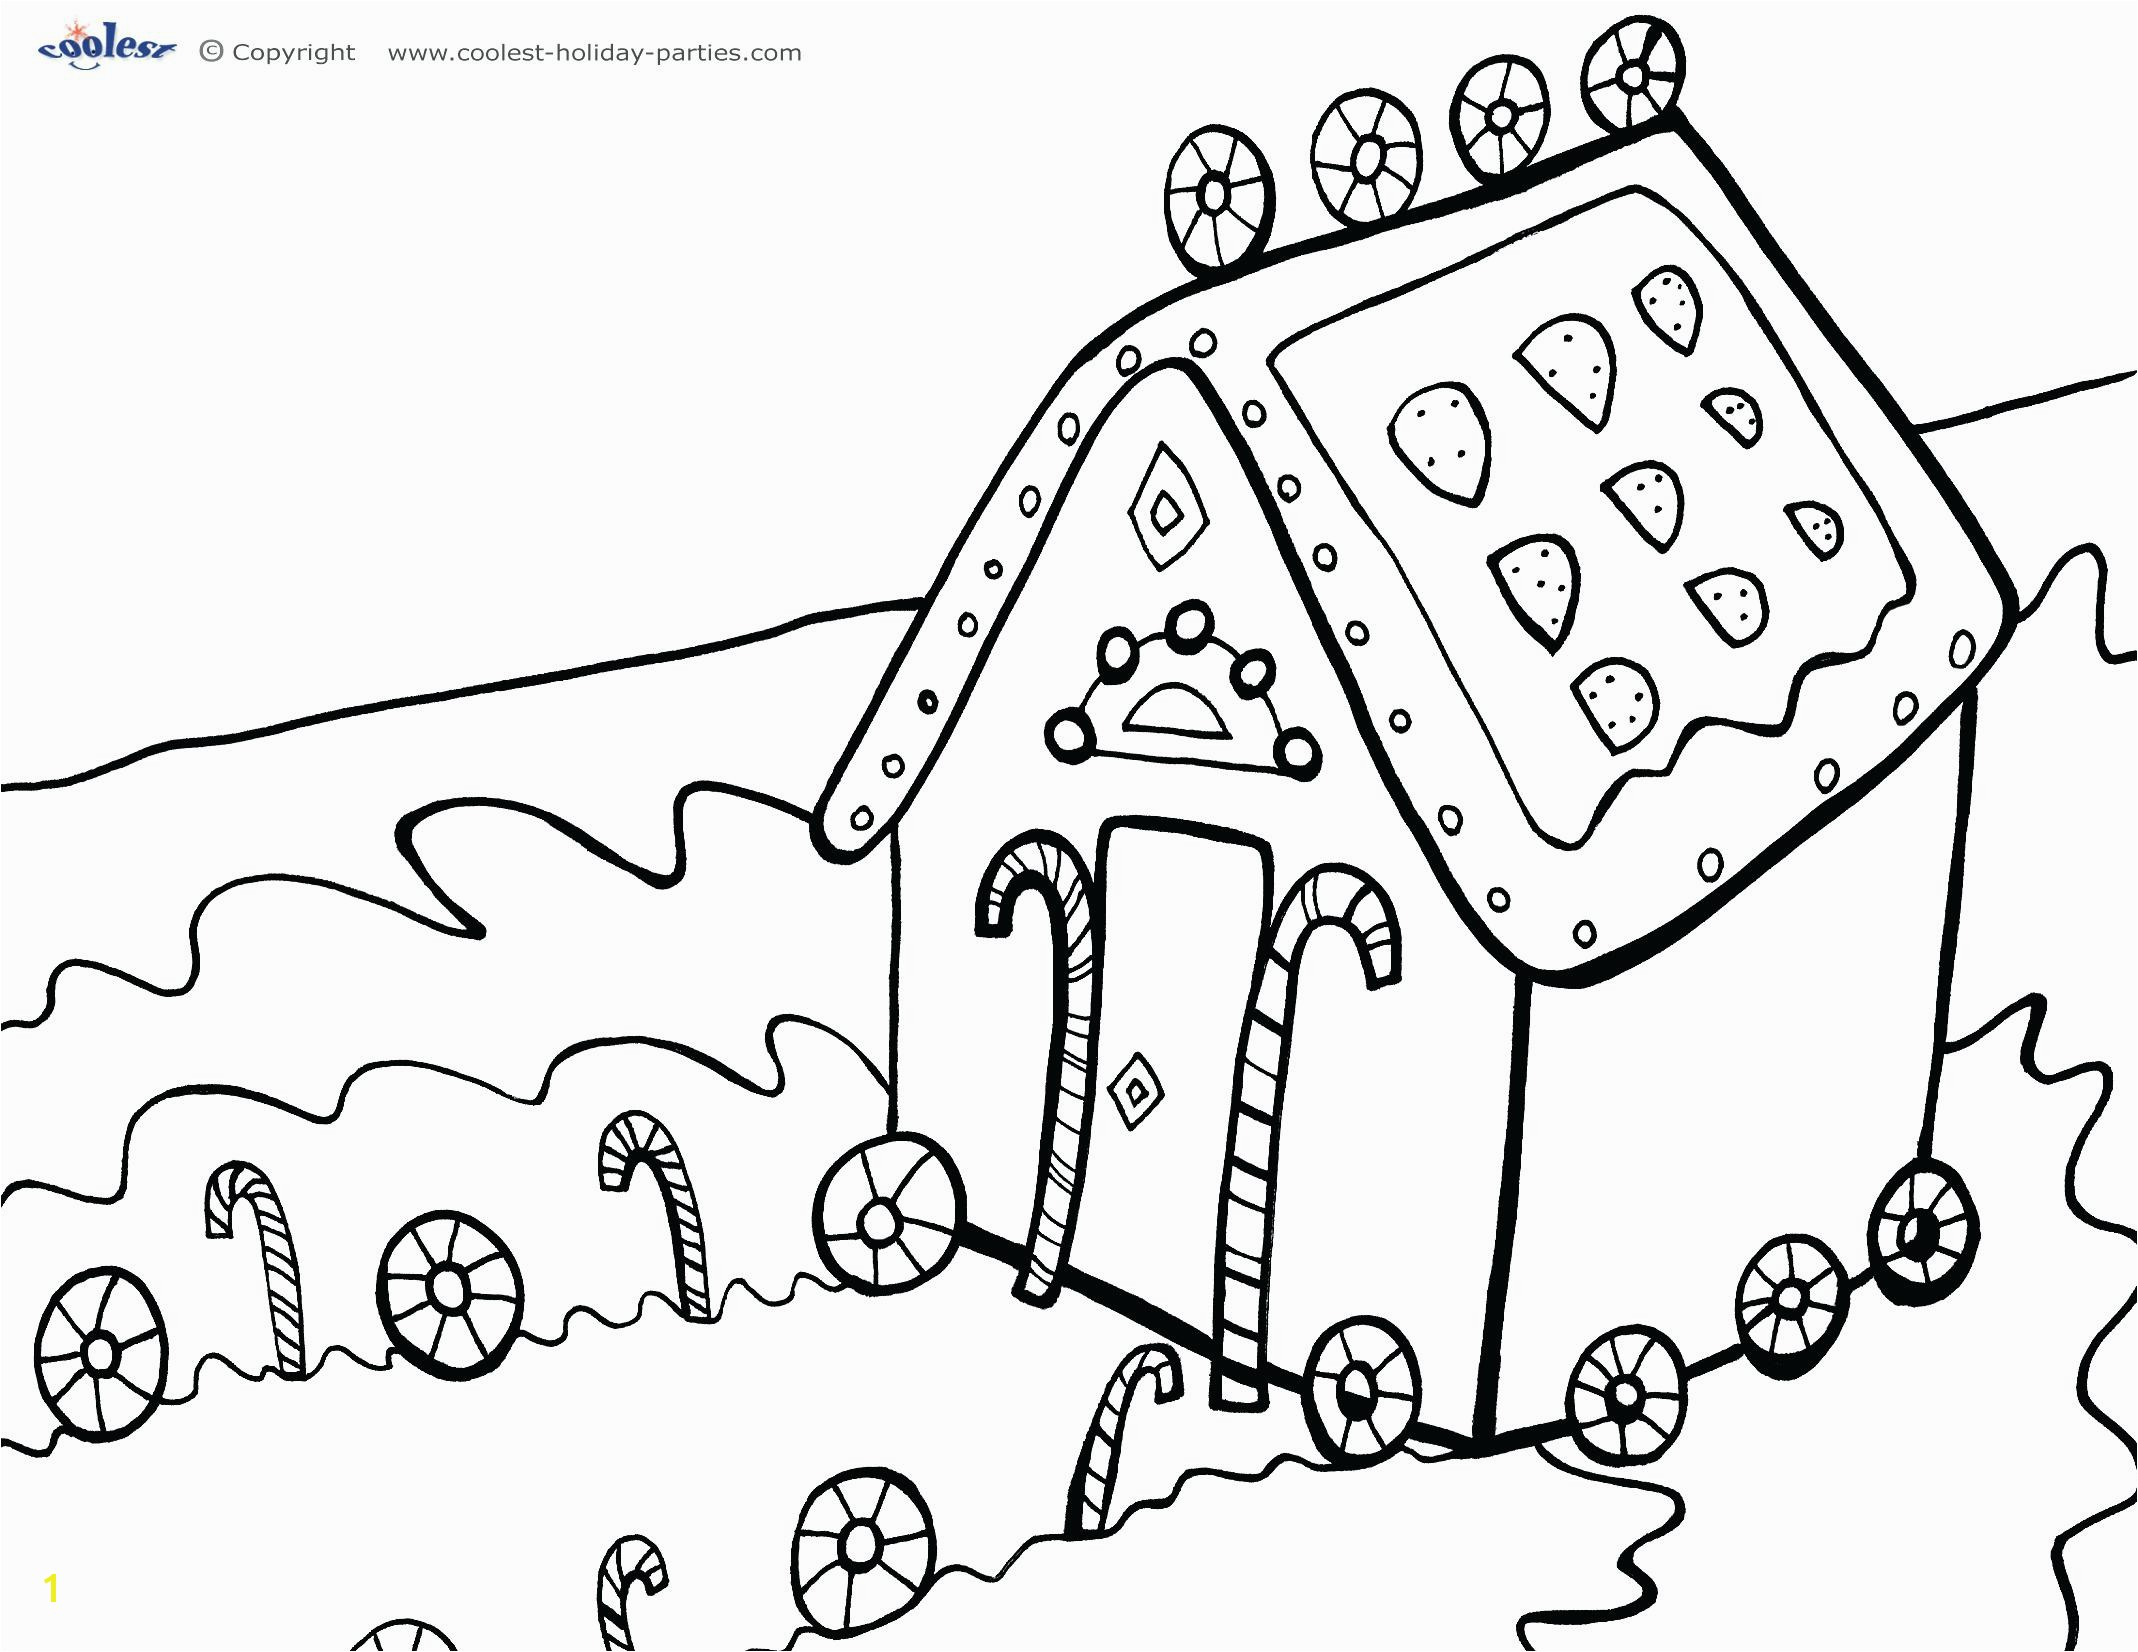 Hansel and Gretel Candy House Coloring Page attractive Hansel and Gretel Coloring Pages Motif Coloring Paper